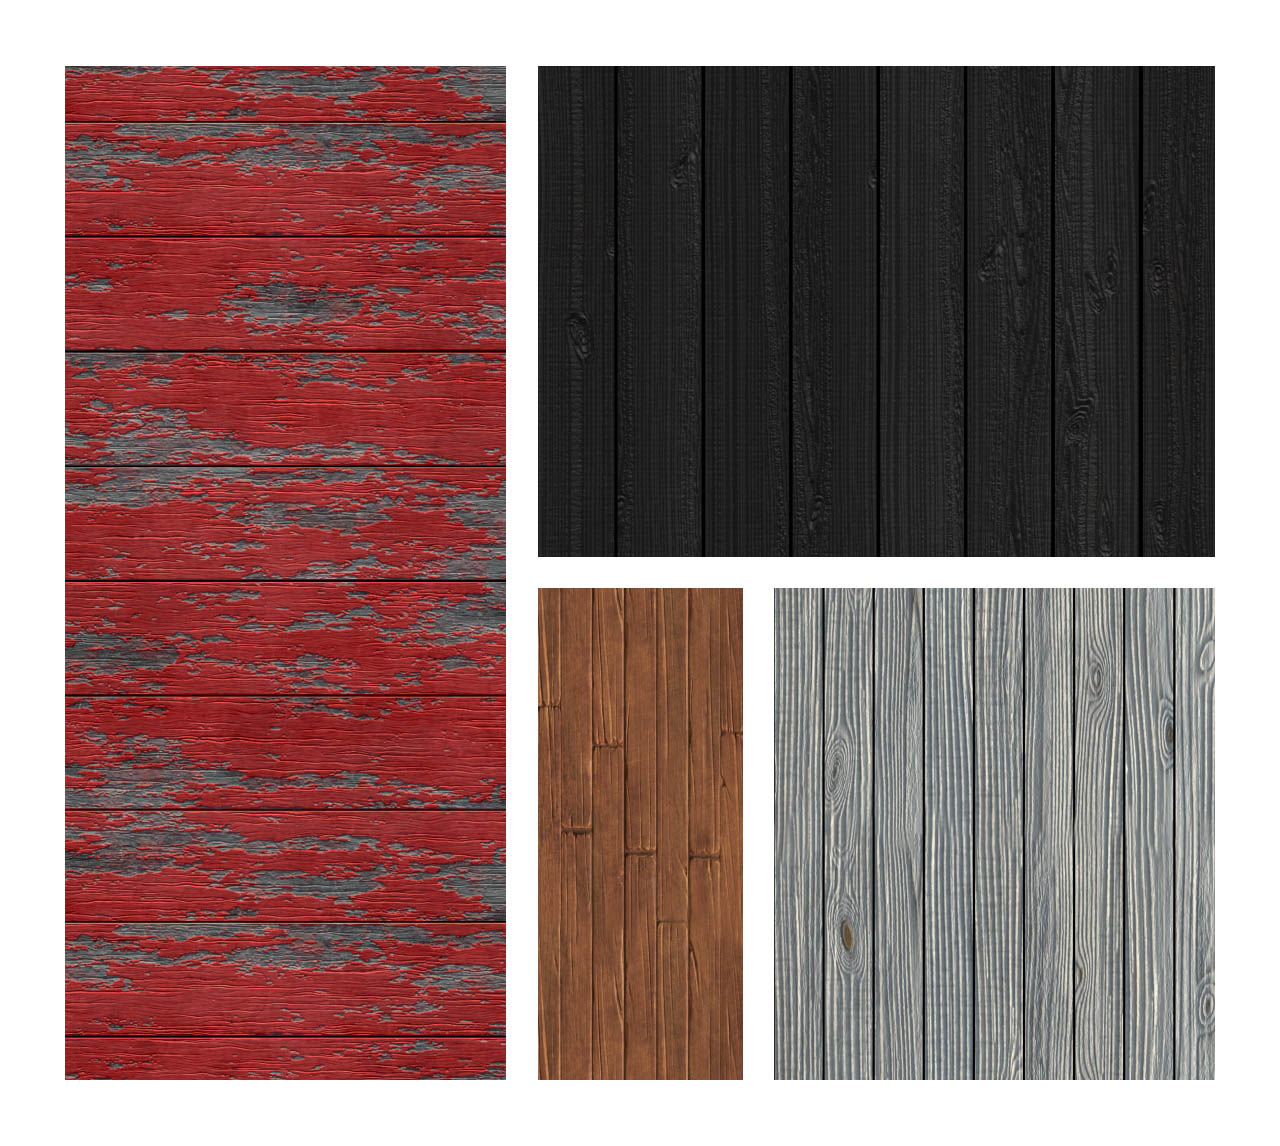 Seamless 3D Wood Patterns & Textures for Photoshop